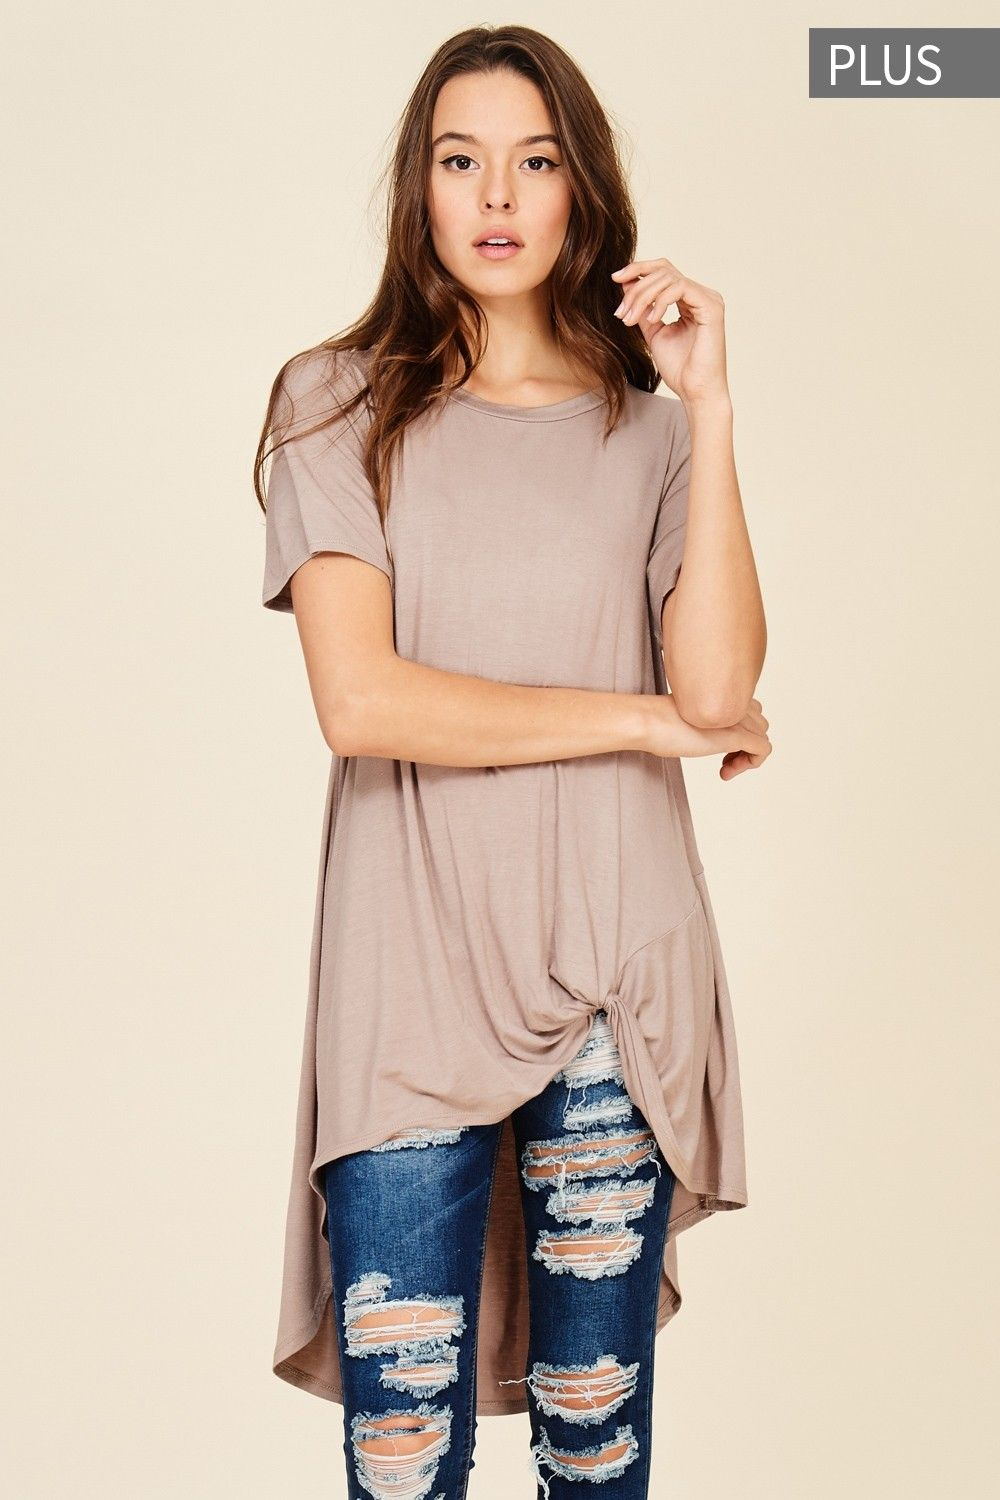 cfb28e3943a8f9 Plus Size Fron Knot Short Sleeve Top Style  T1179P Plus size knit top  featuring solid